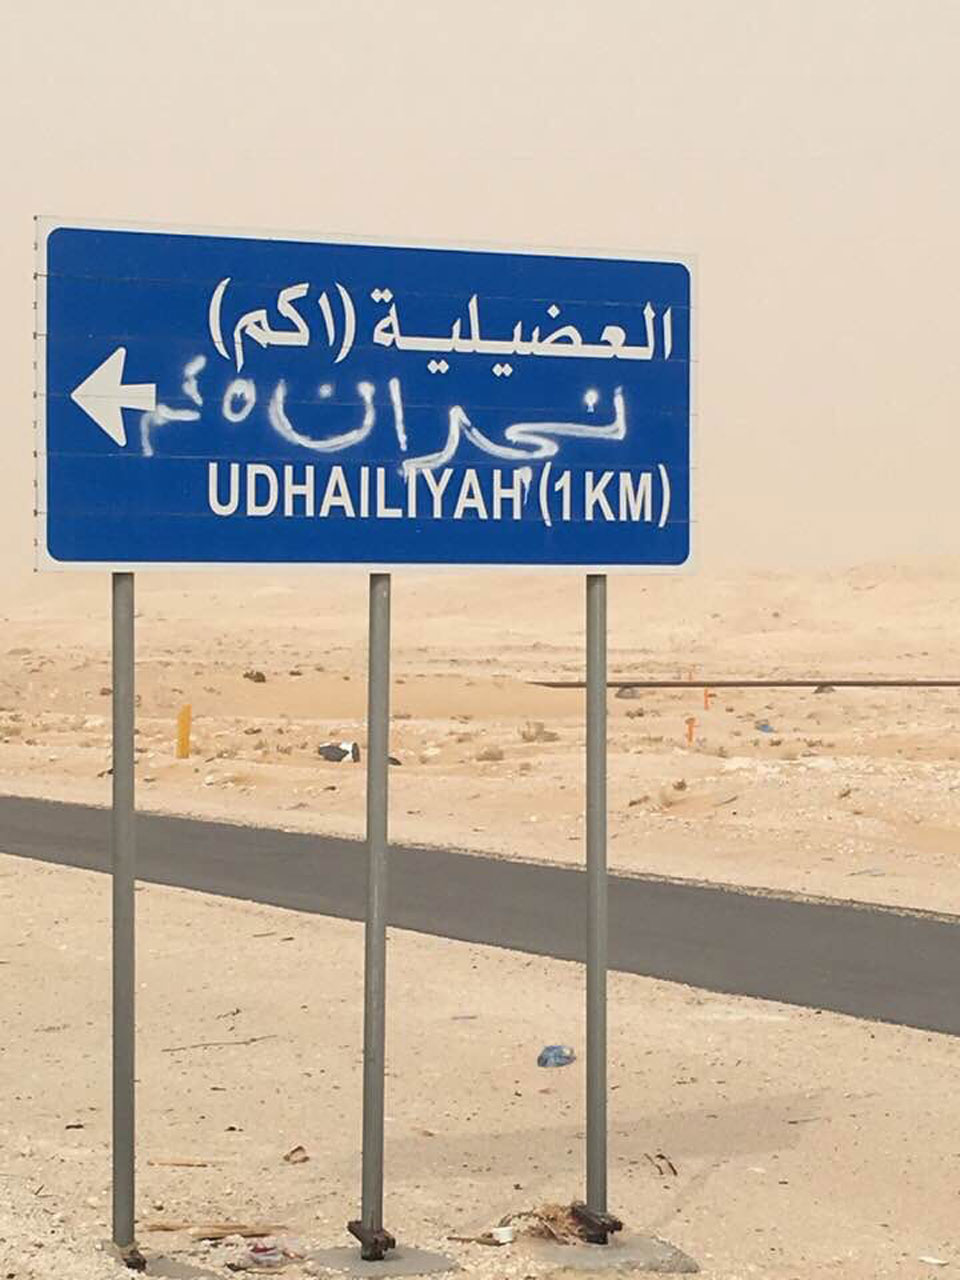 The Way to Udhailiyah